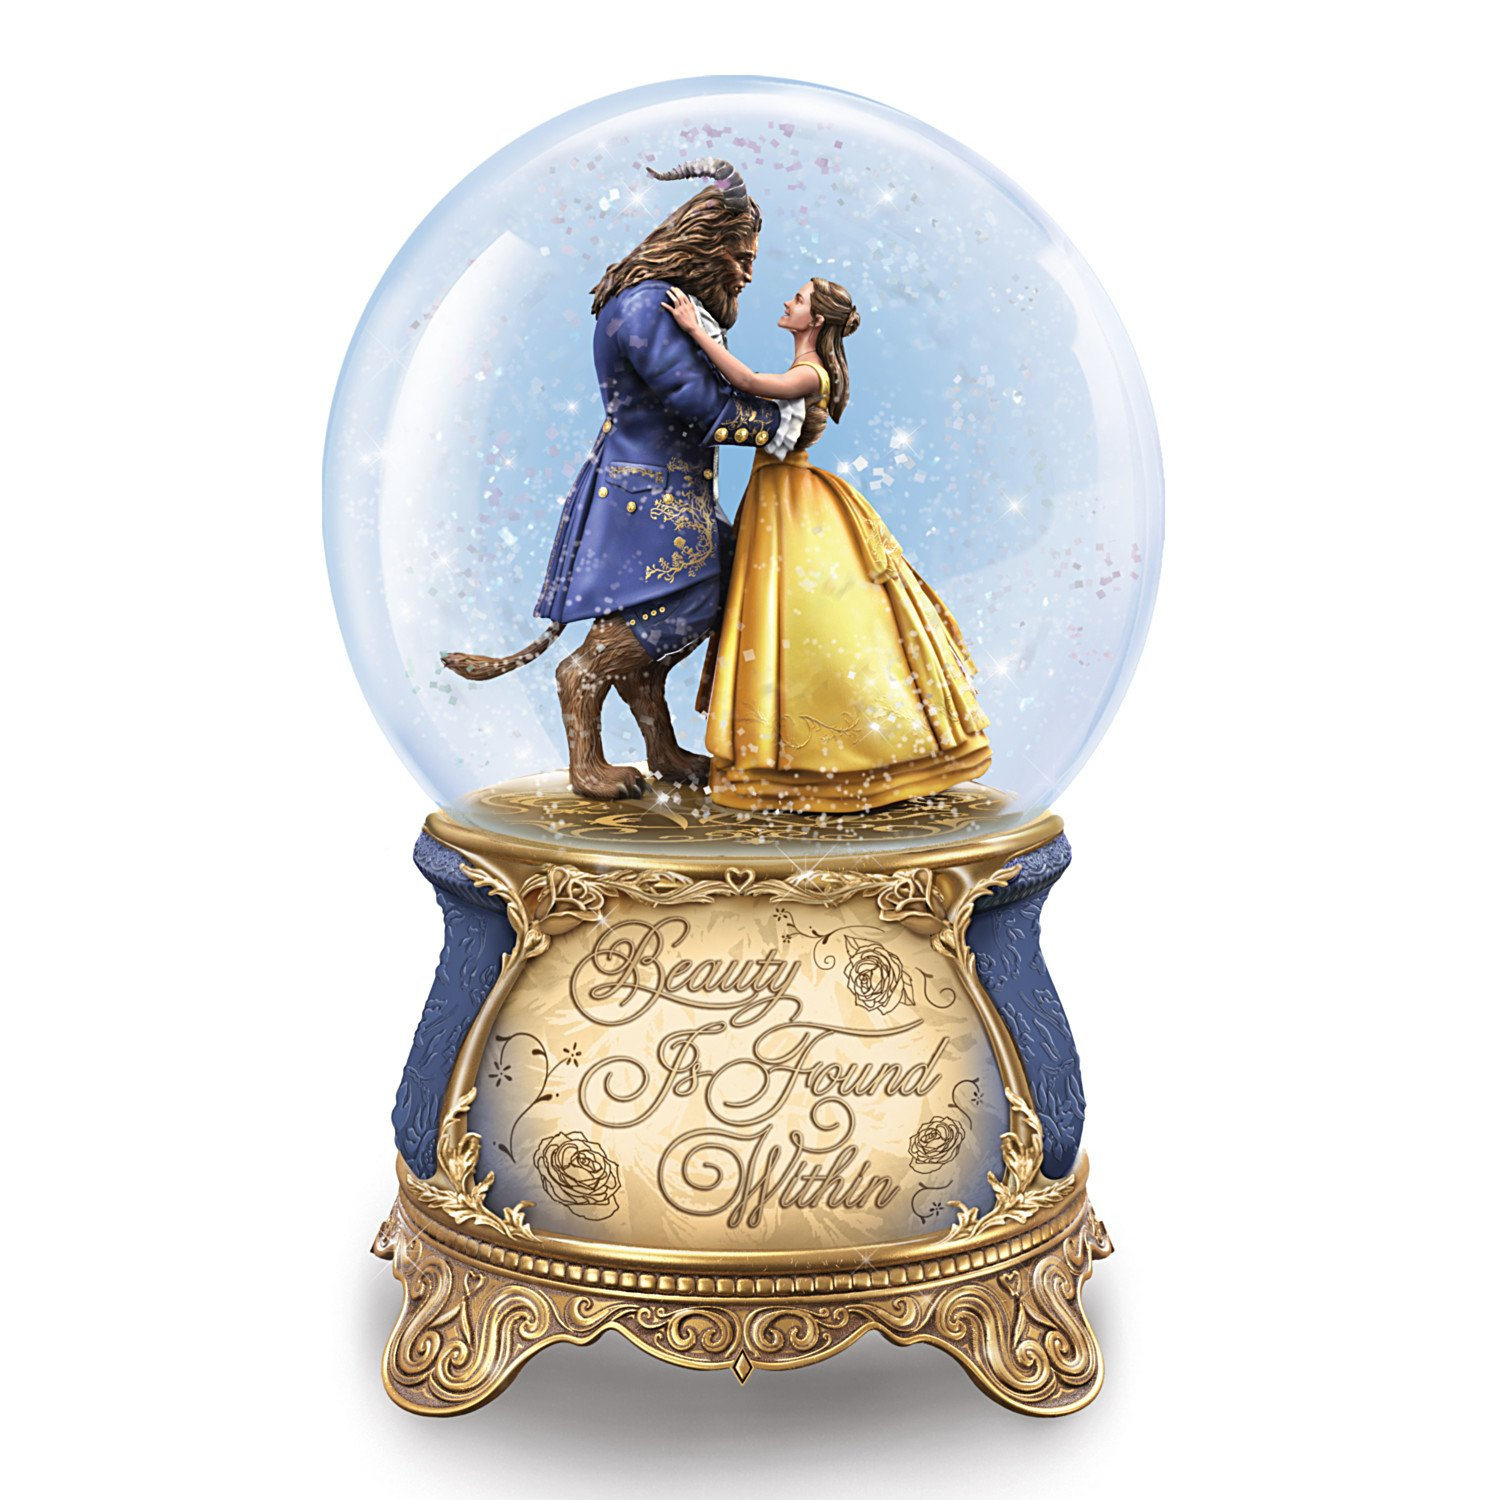 Bradford Exchange The Disney Beauty and the Beast Dance in a Musical Glitter Globe